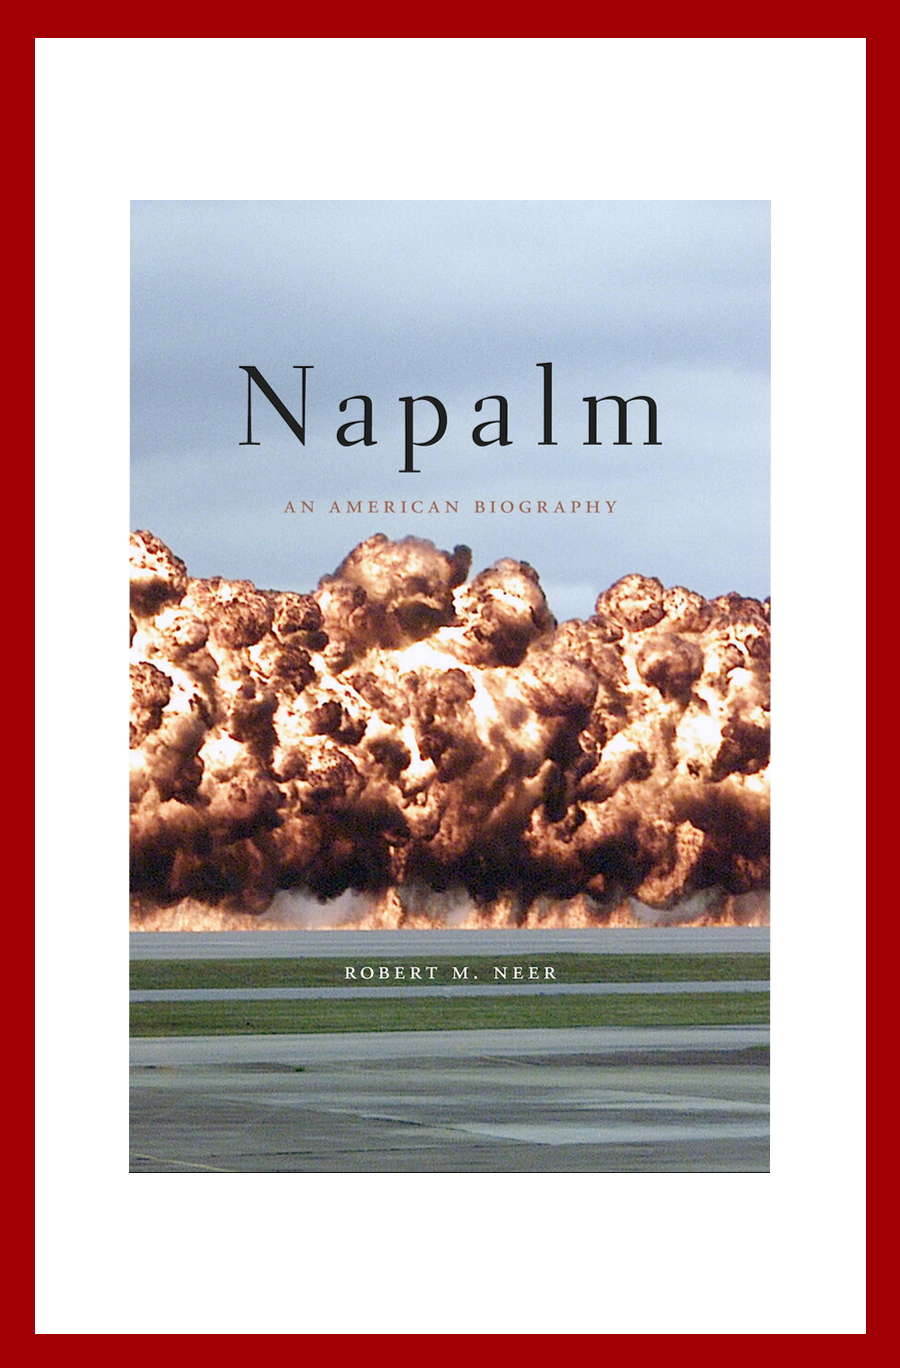 Napalm, An American Biography